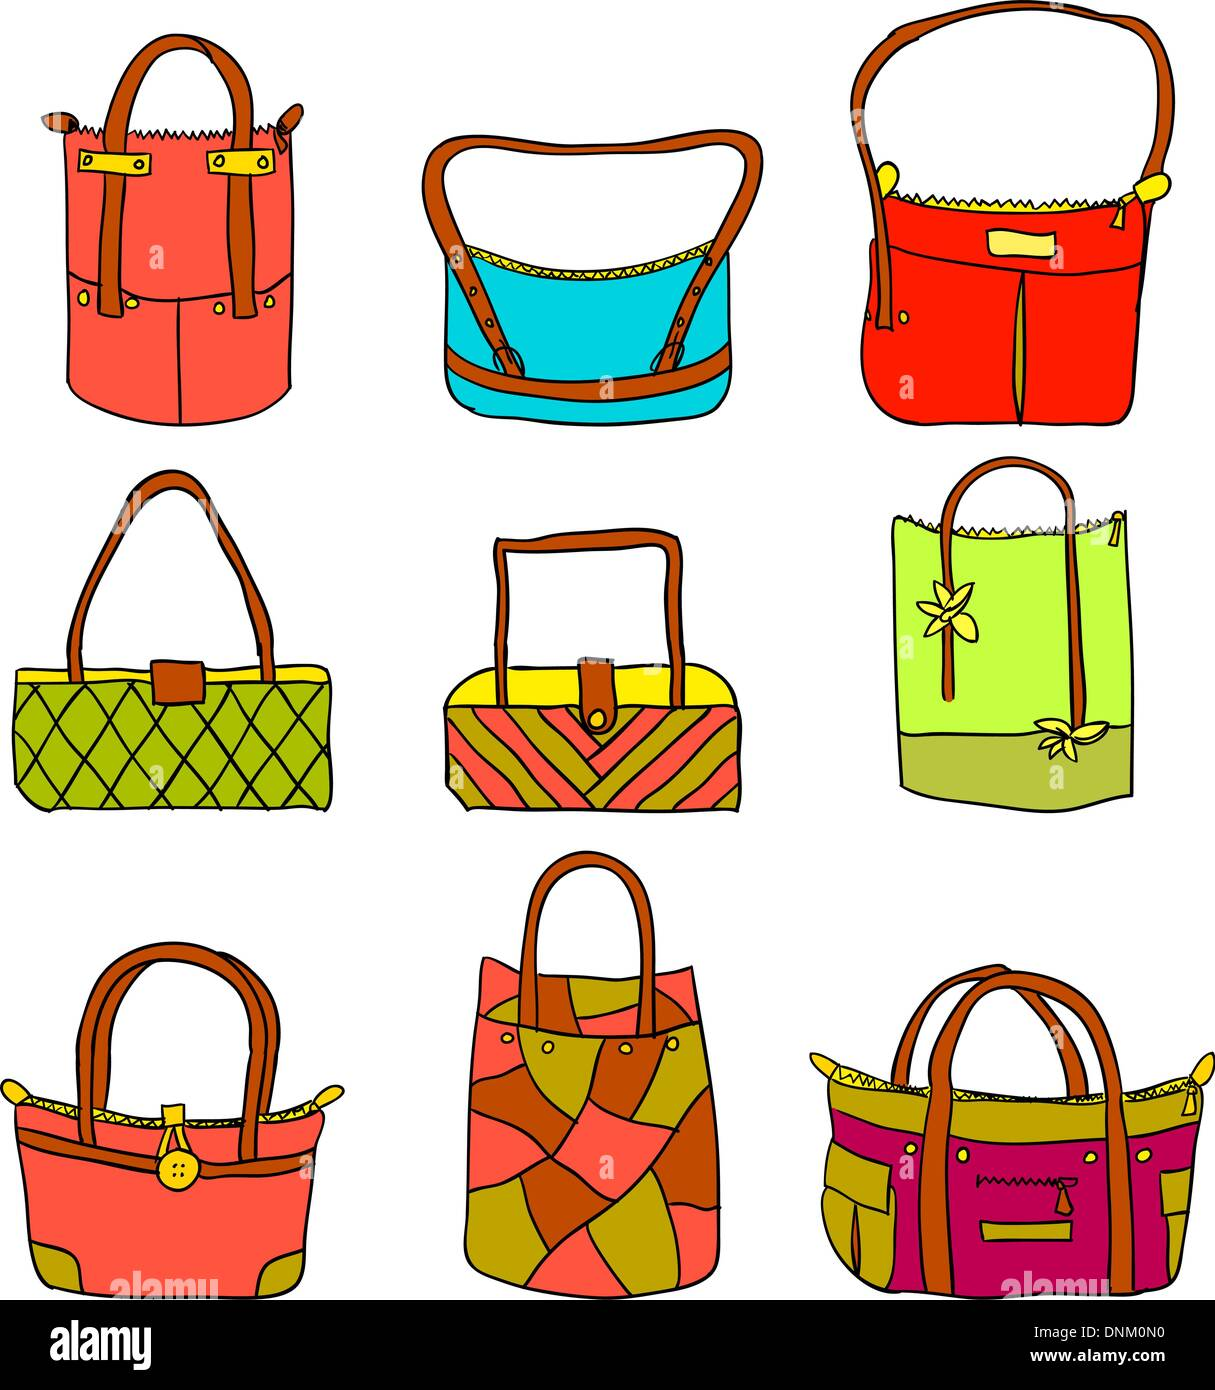 vector collection of woman's accessories - Stock Image